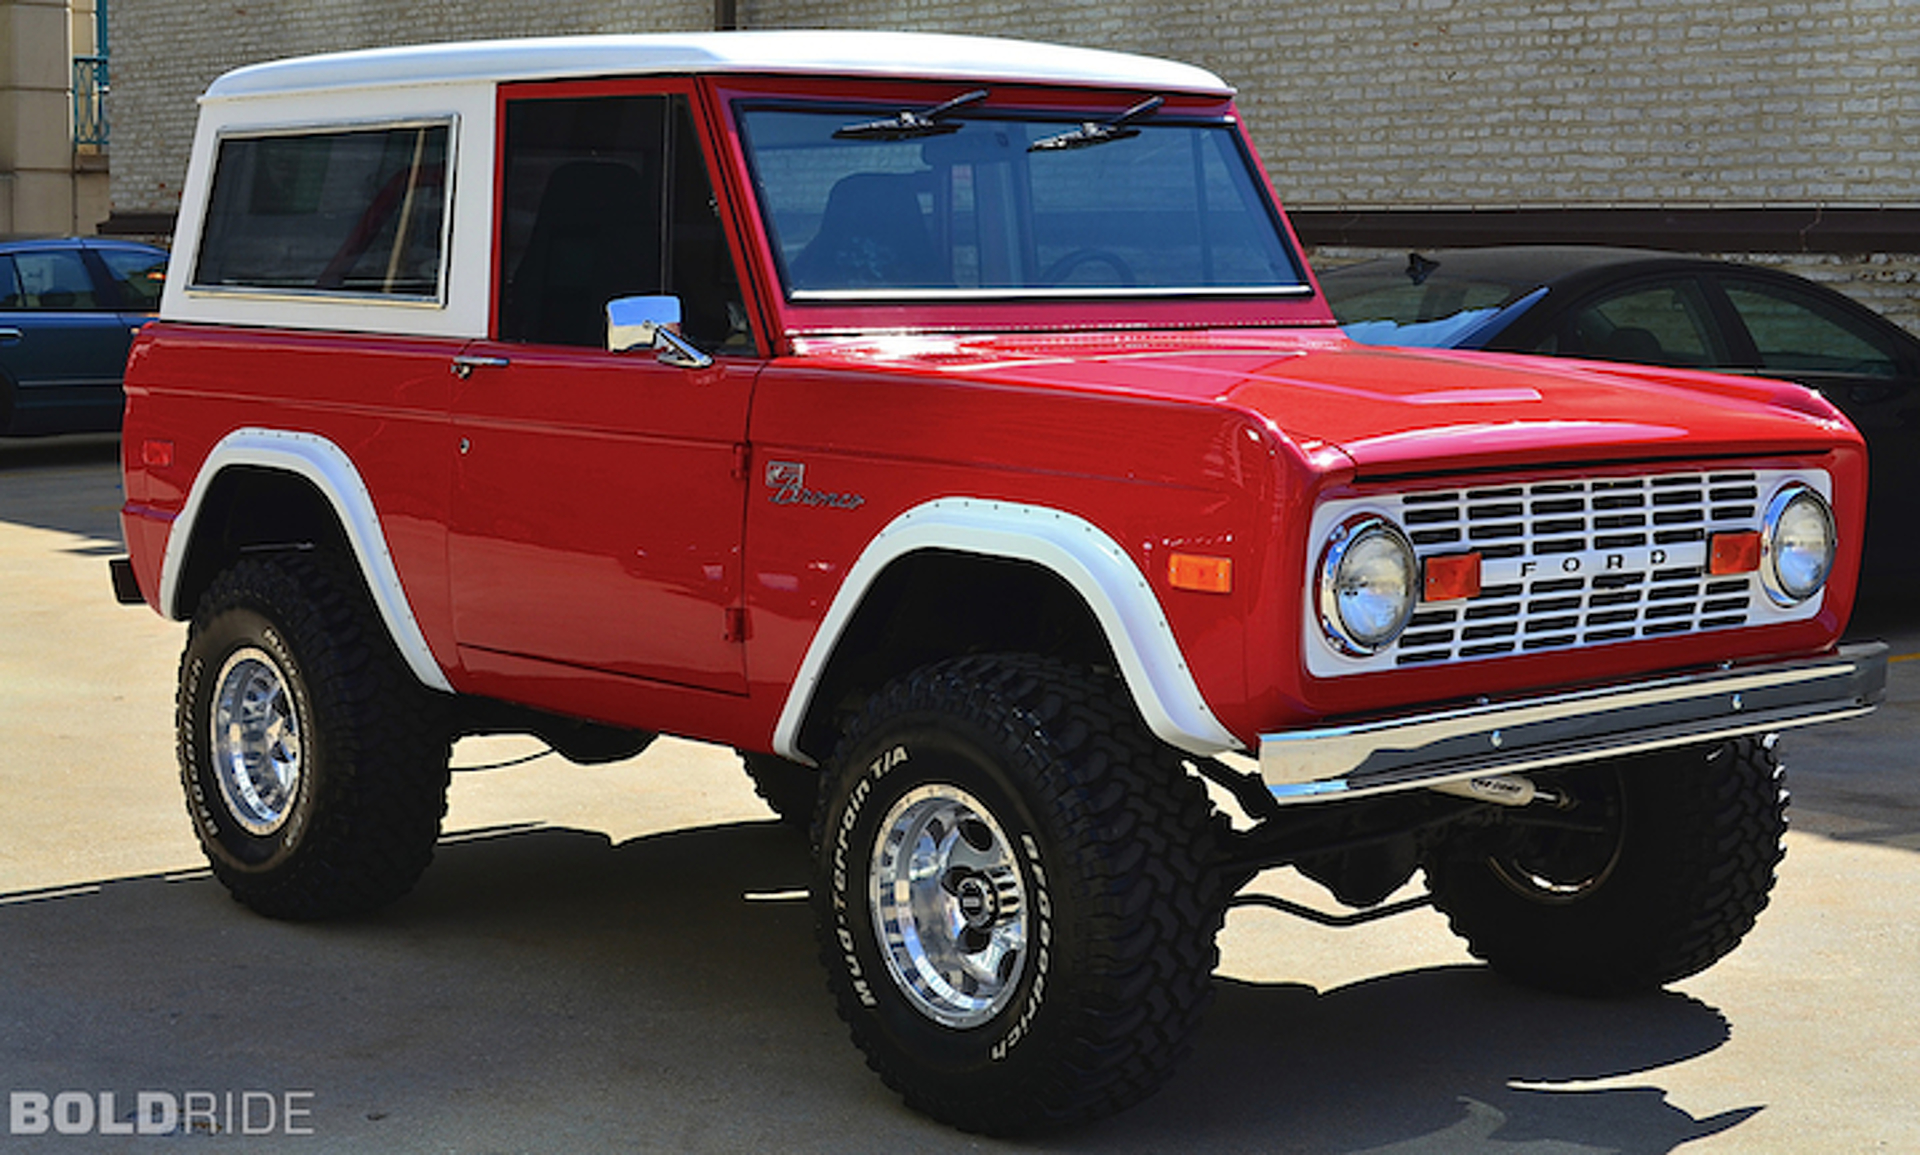 This 1970 Ford Bronco Is The One You Need To Buy Interior